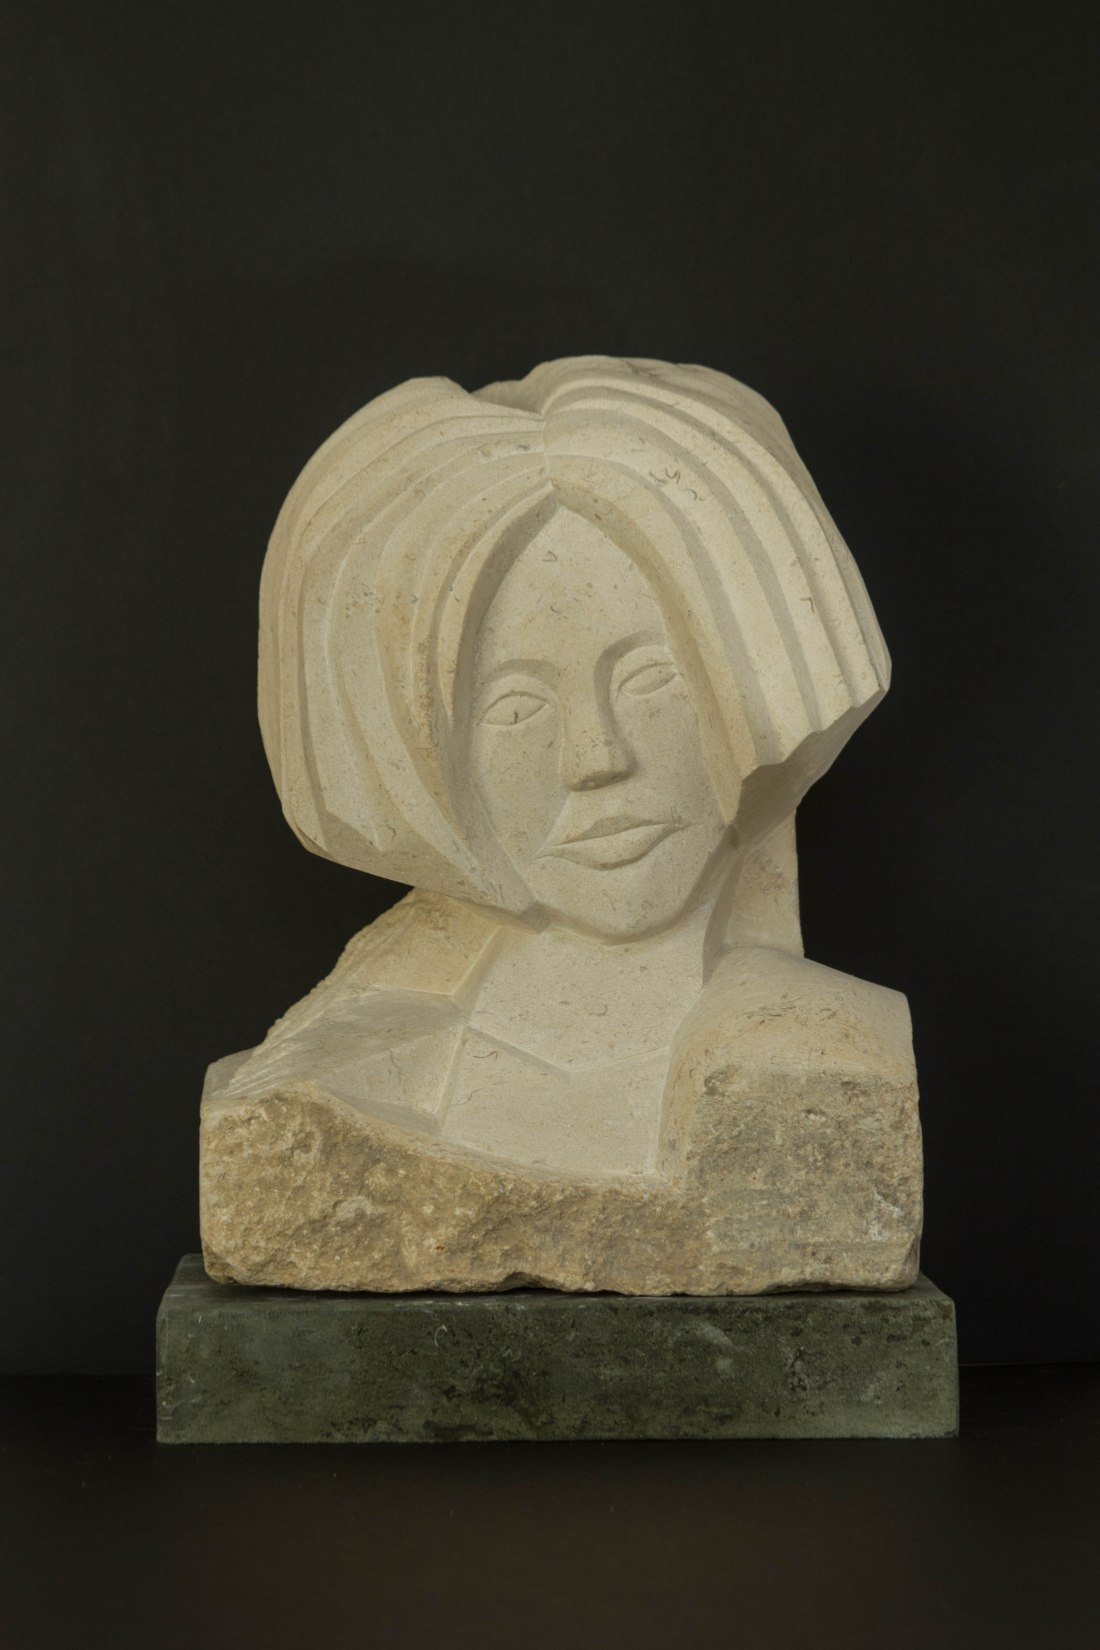 carving / sculpture of head with much hair found reclaimed stone ? Portland